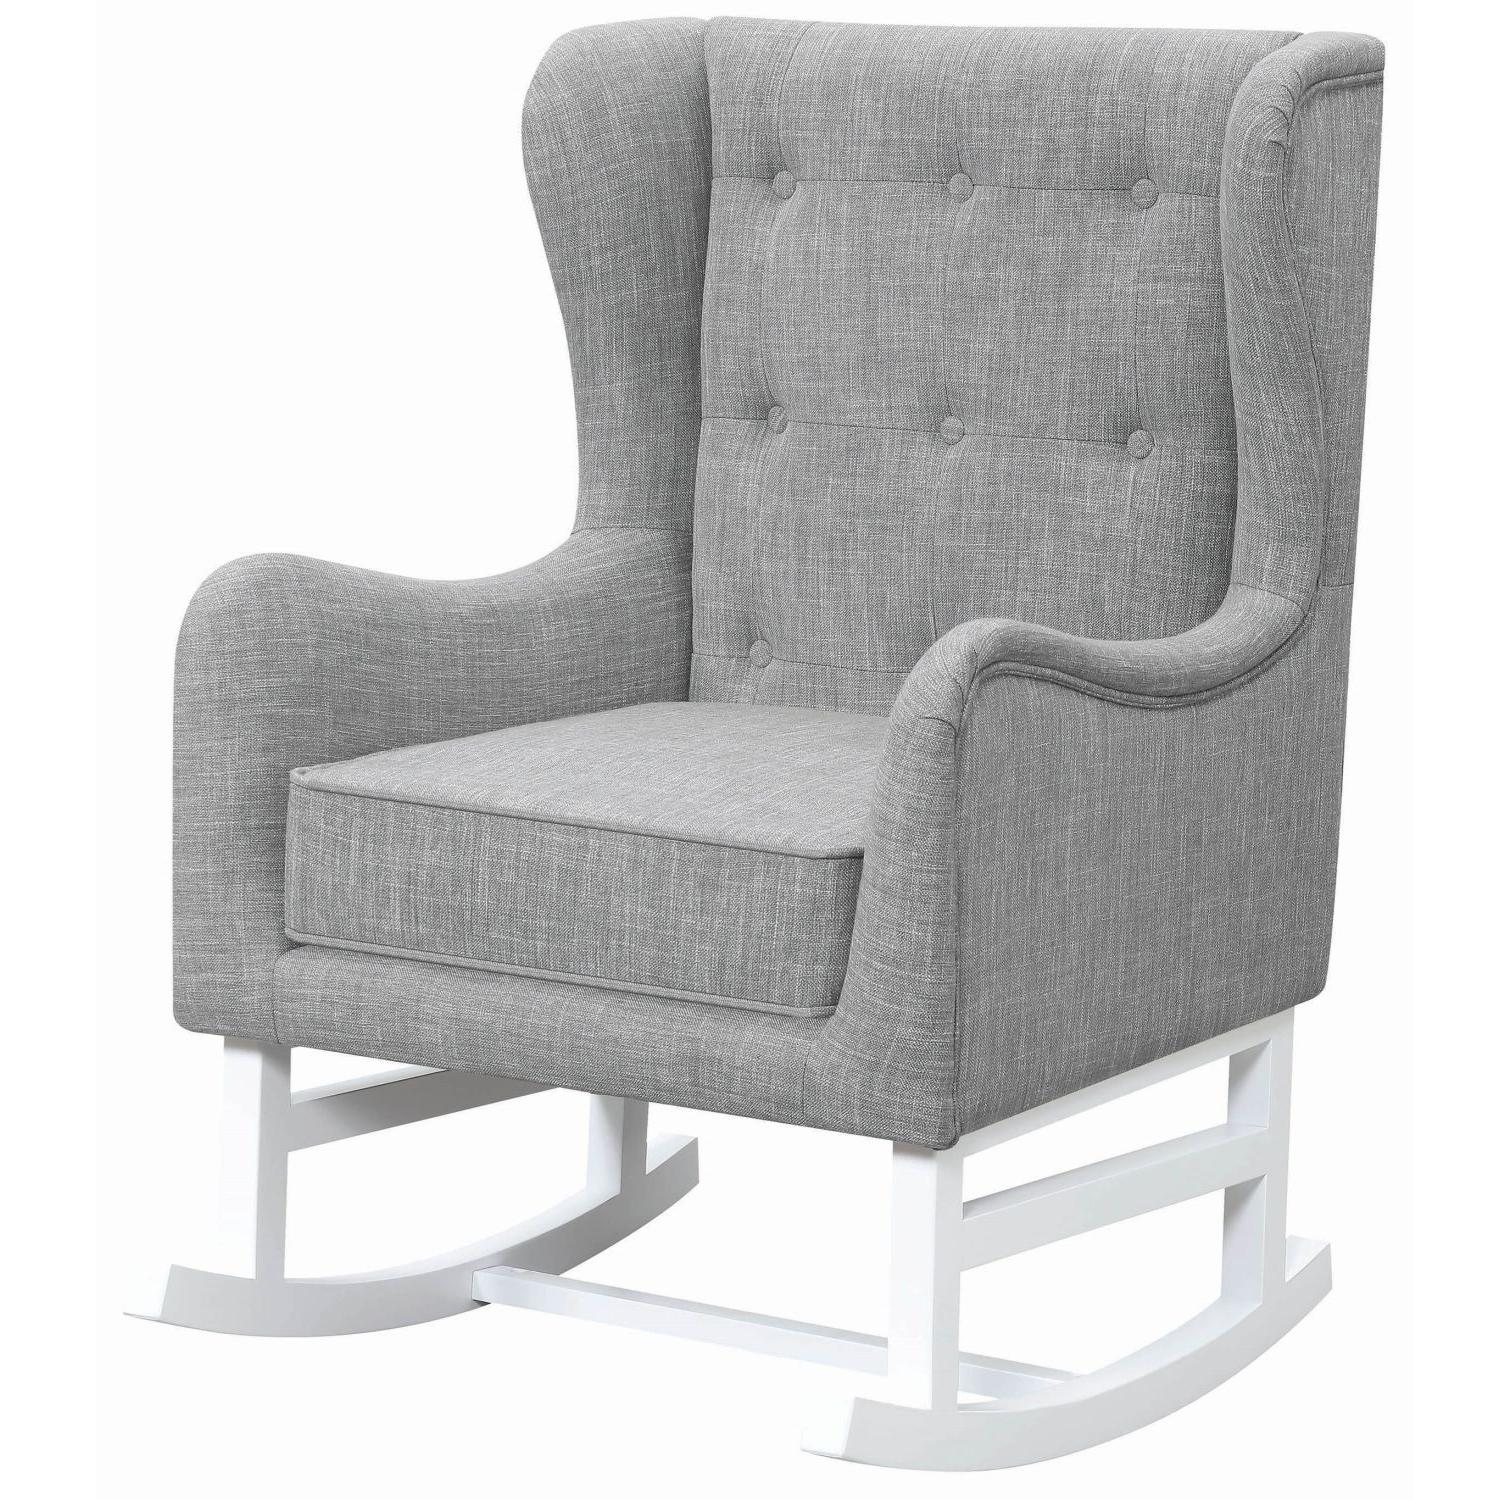 High Backed Rocking Chair In Grey Fabric W Tufted Back